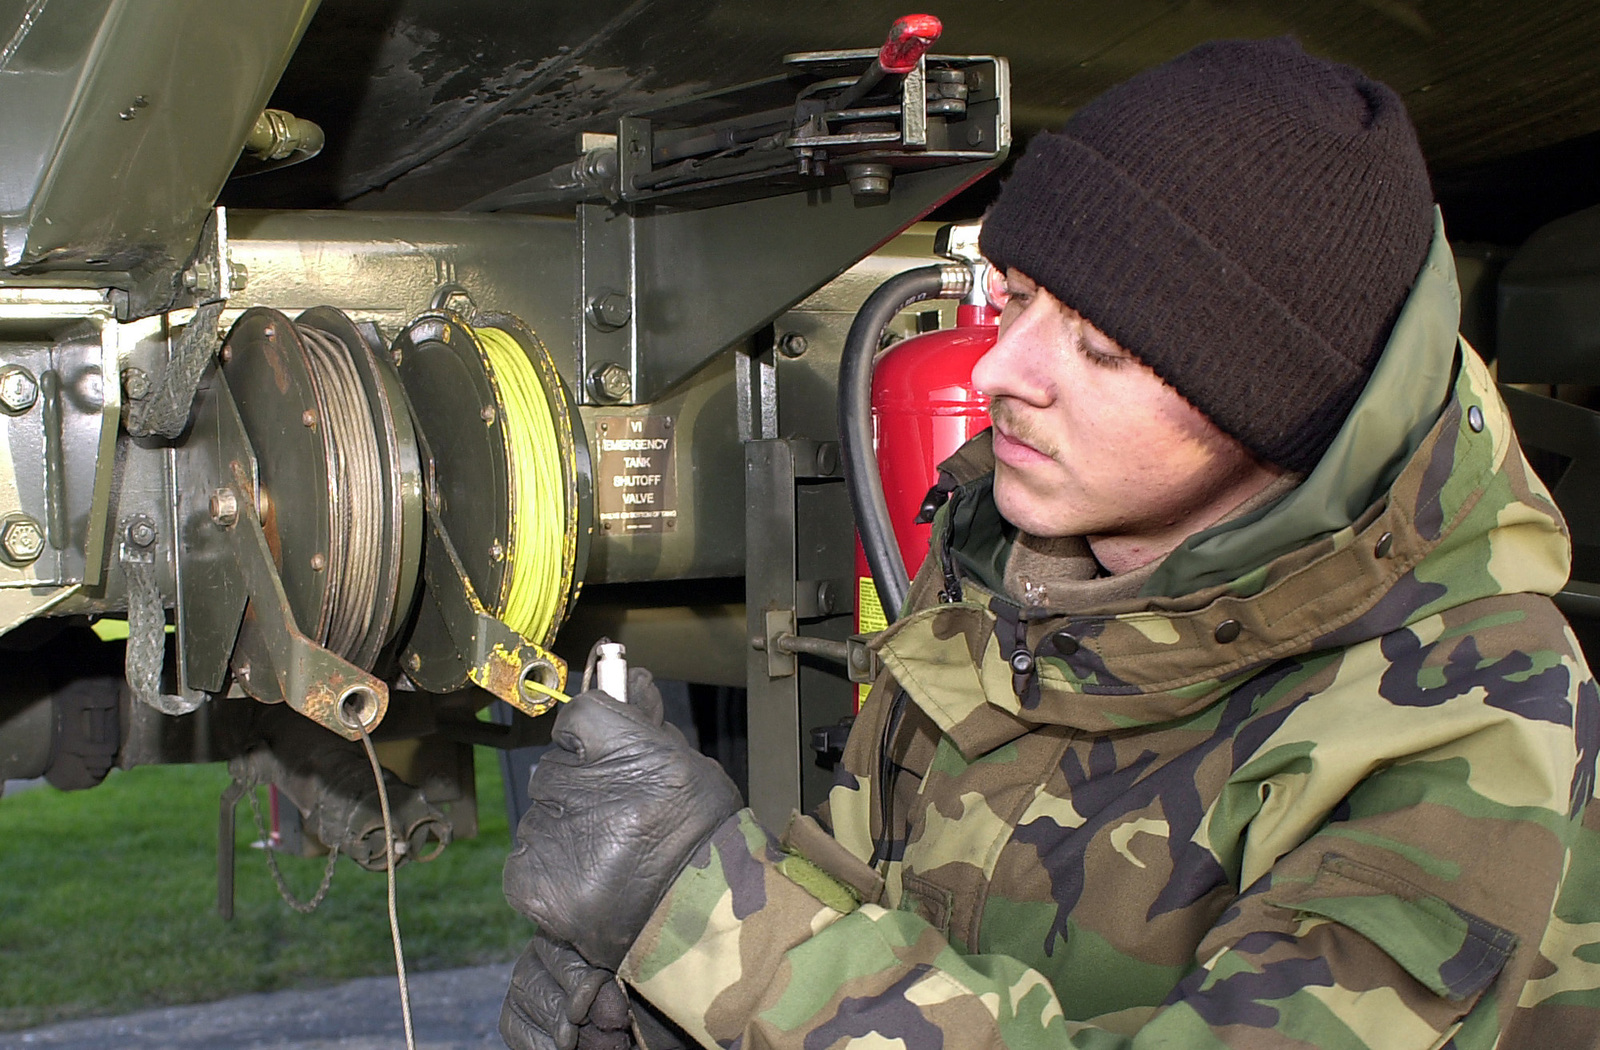 US Air Force (USAF) AIRMAN First Class (A1C) Christopher Meredith, 100th Logistics Readiness Squadron (LRS), inspects a bonding plug and cable on his fuel truck at RAF Mildenhall, United Kingdom. The inspection is part of a daily routine to ensure all fuel trucks meet safety requirements and are fully operational